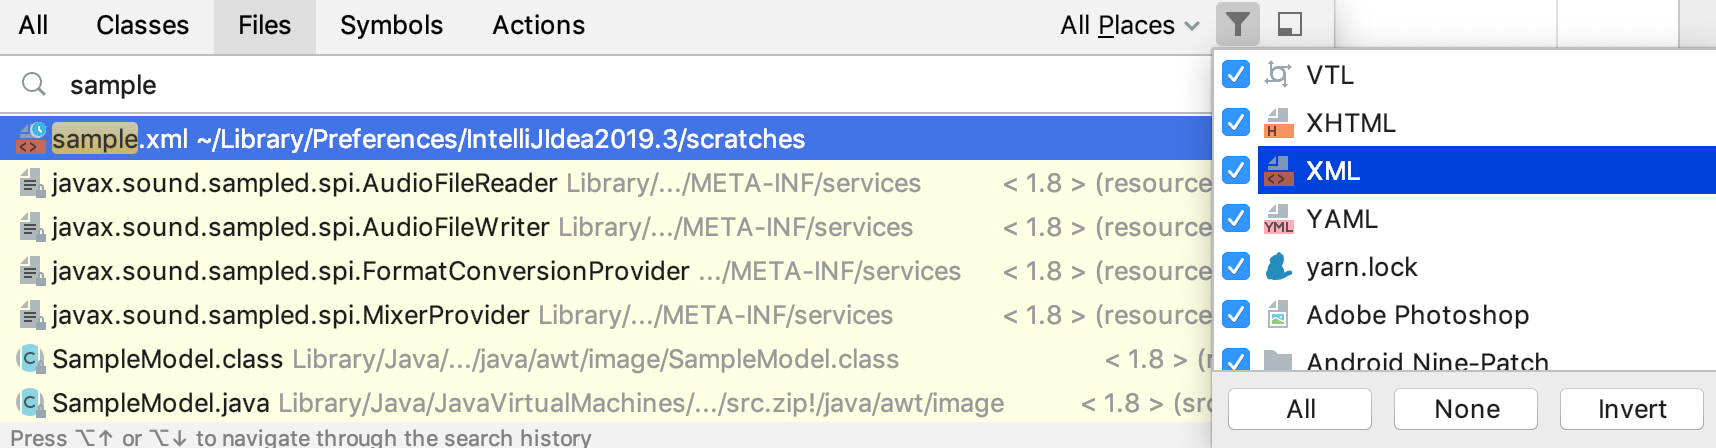 Exclude files from search